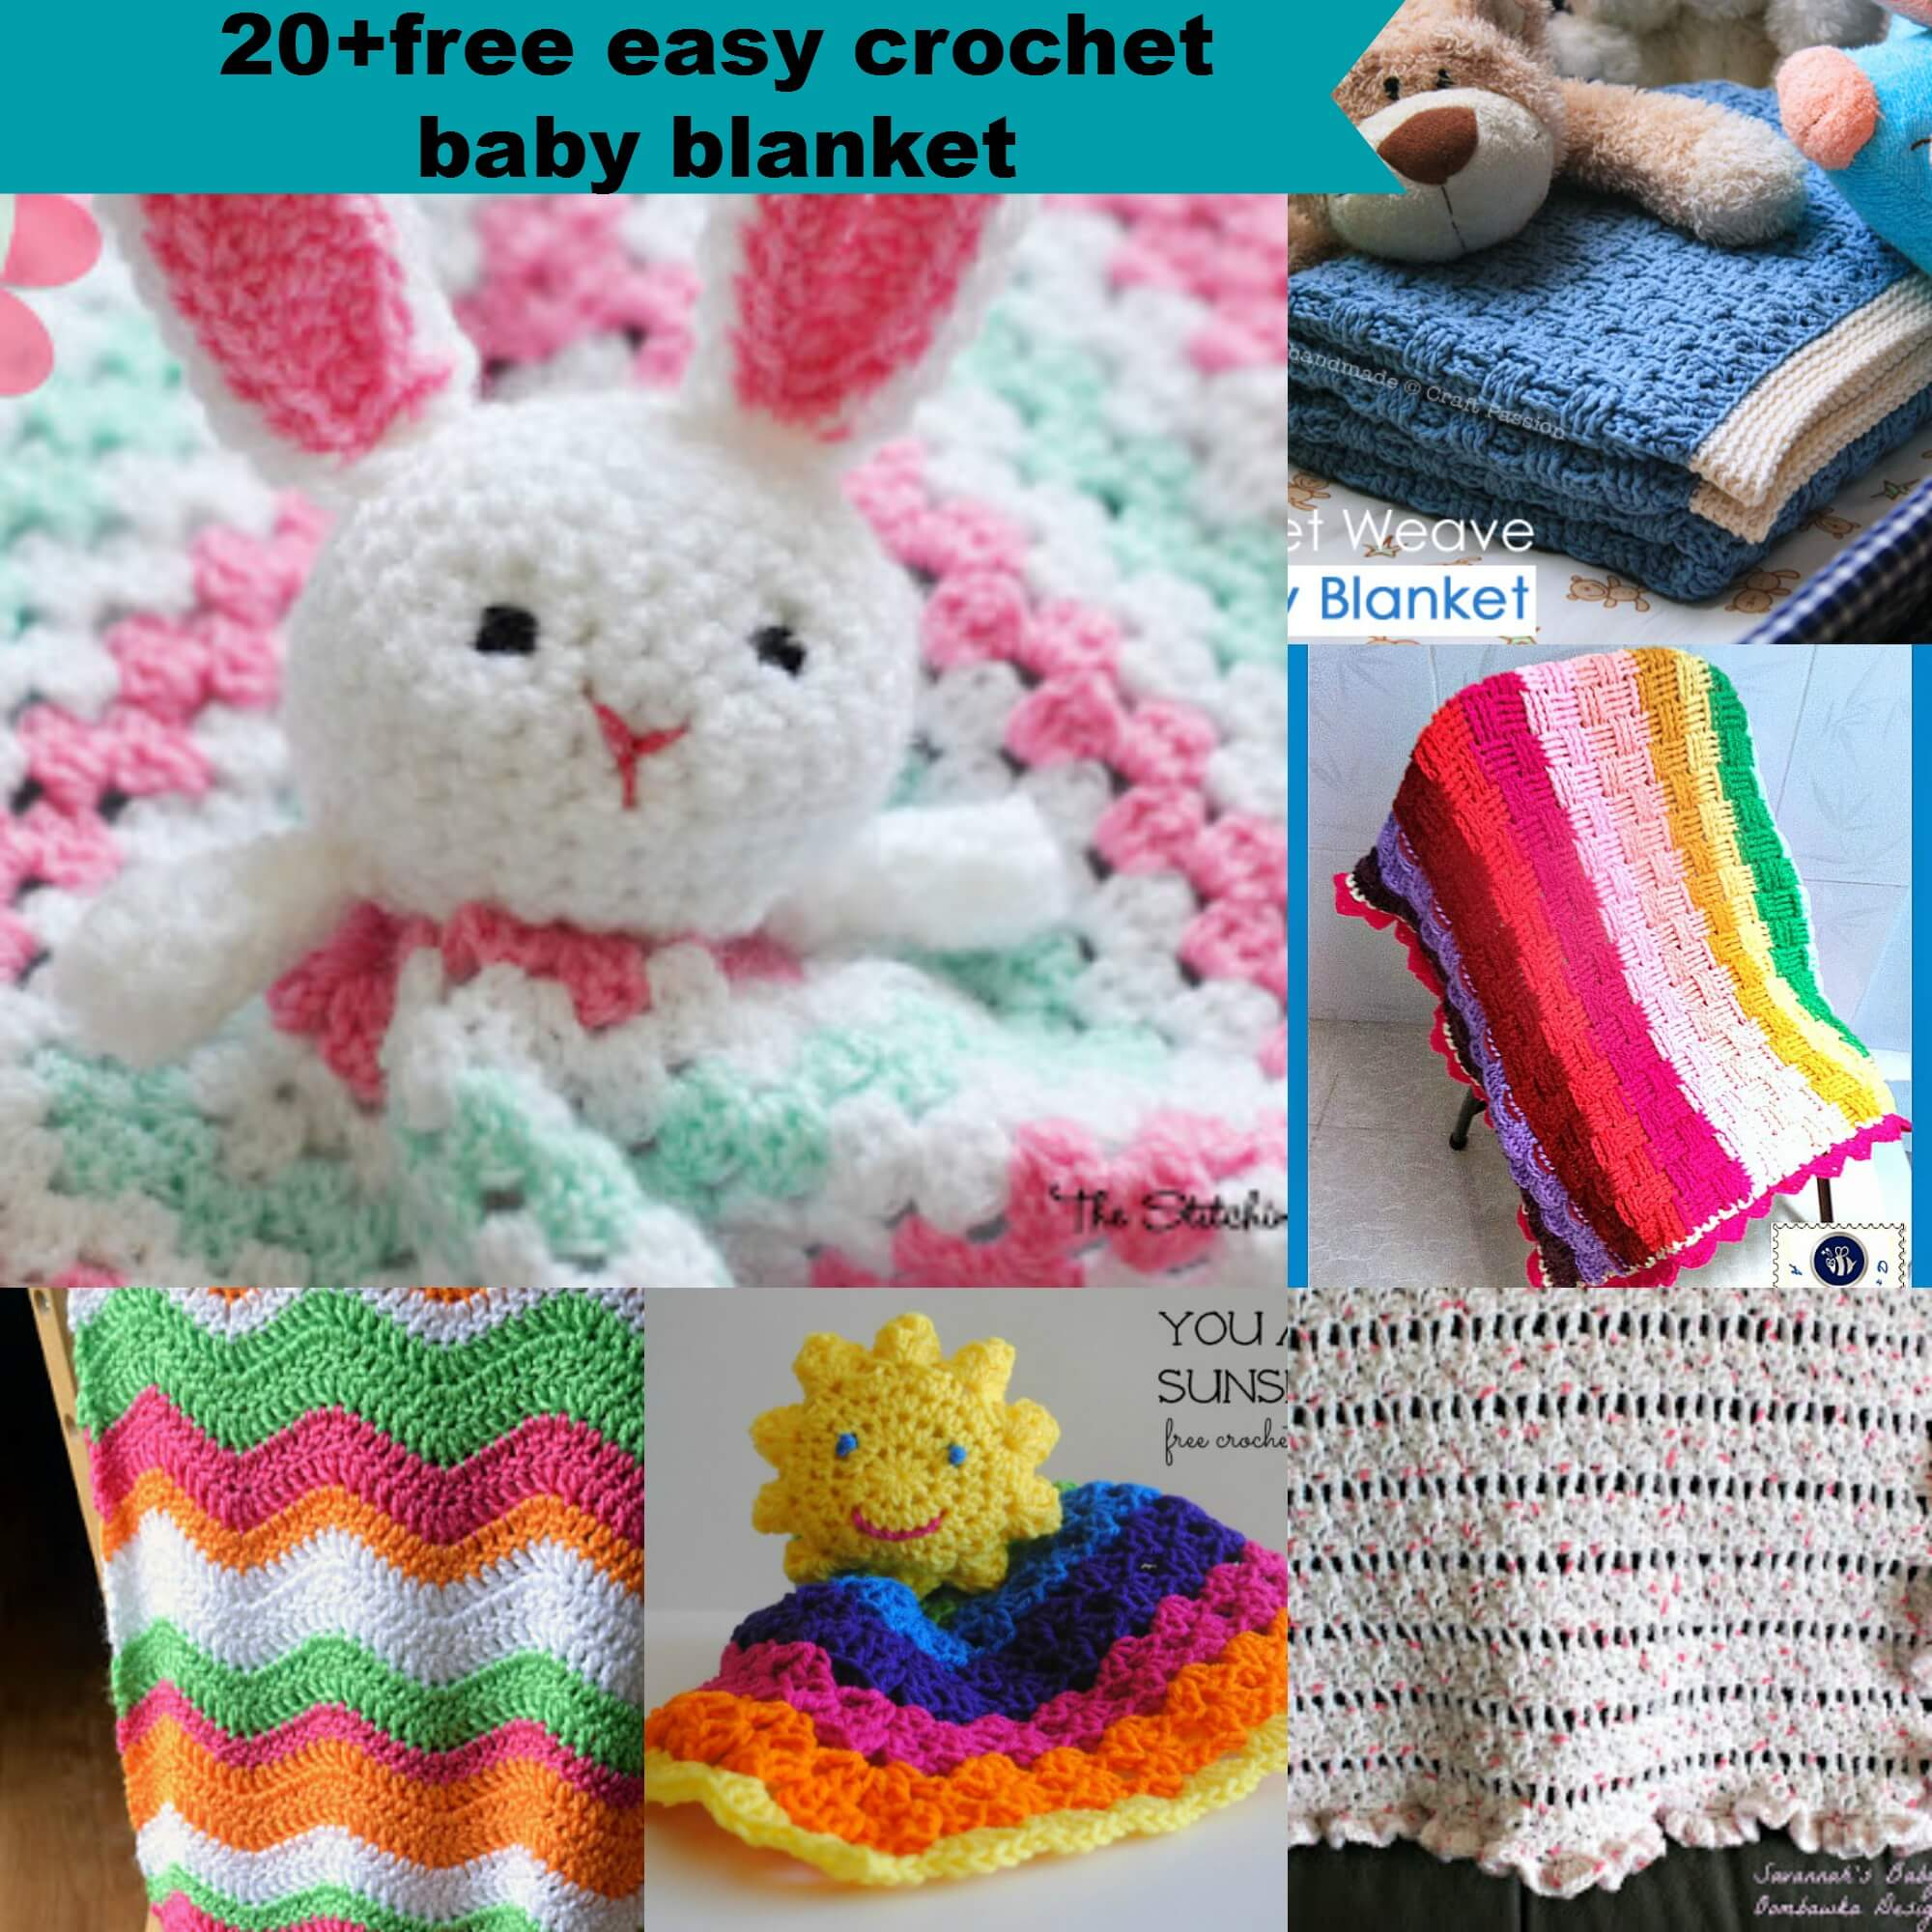 20+free crochet easy baby blanket pattern